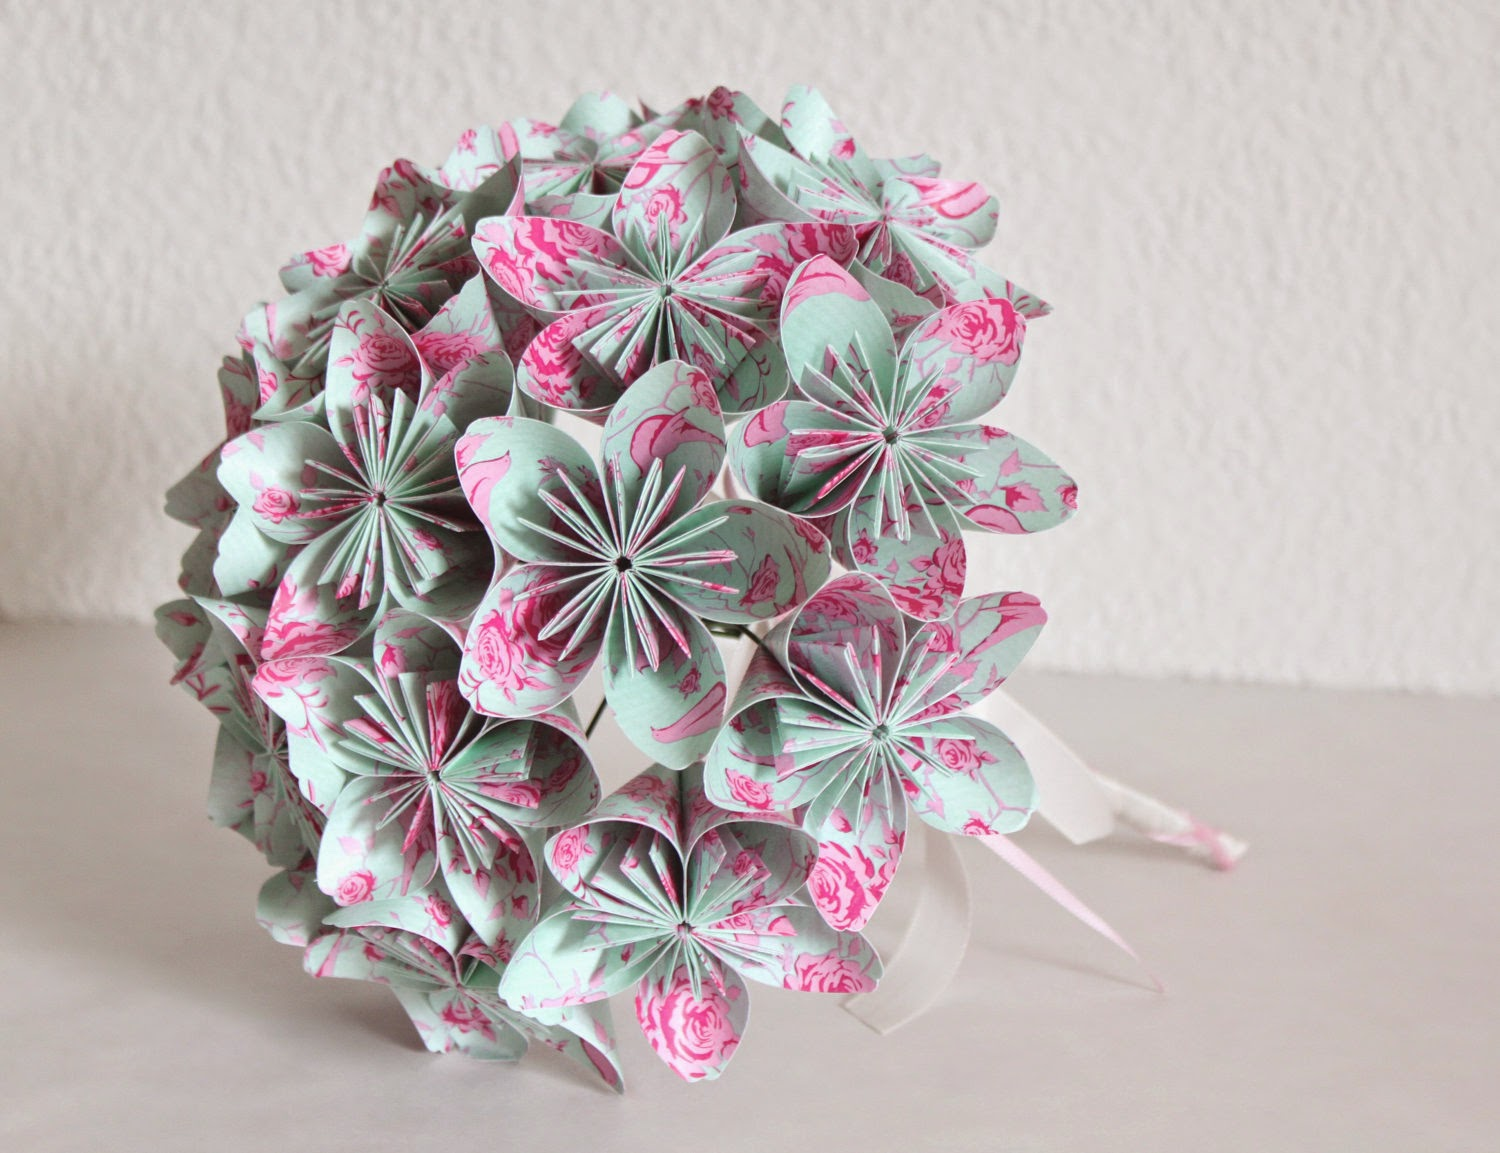 Origami flower bouquet photo 3d origami for kids origami flower bouquet photo mightylinksfo